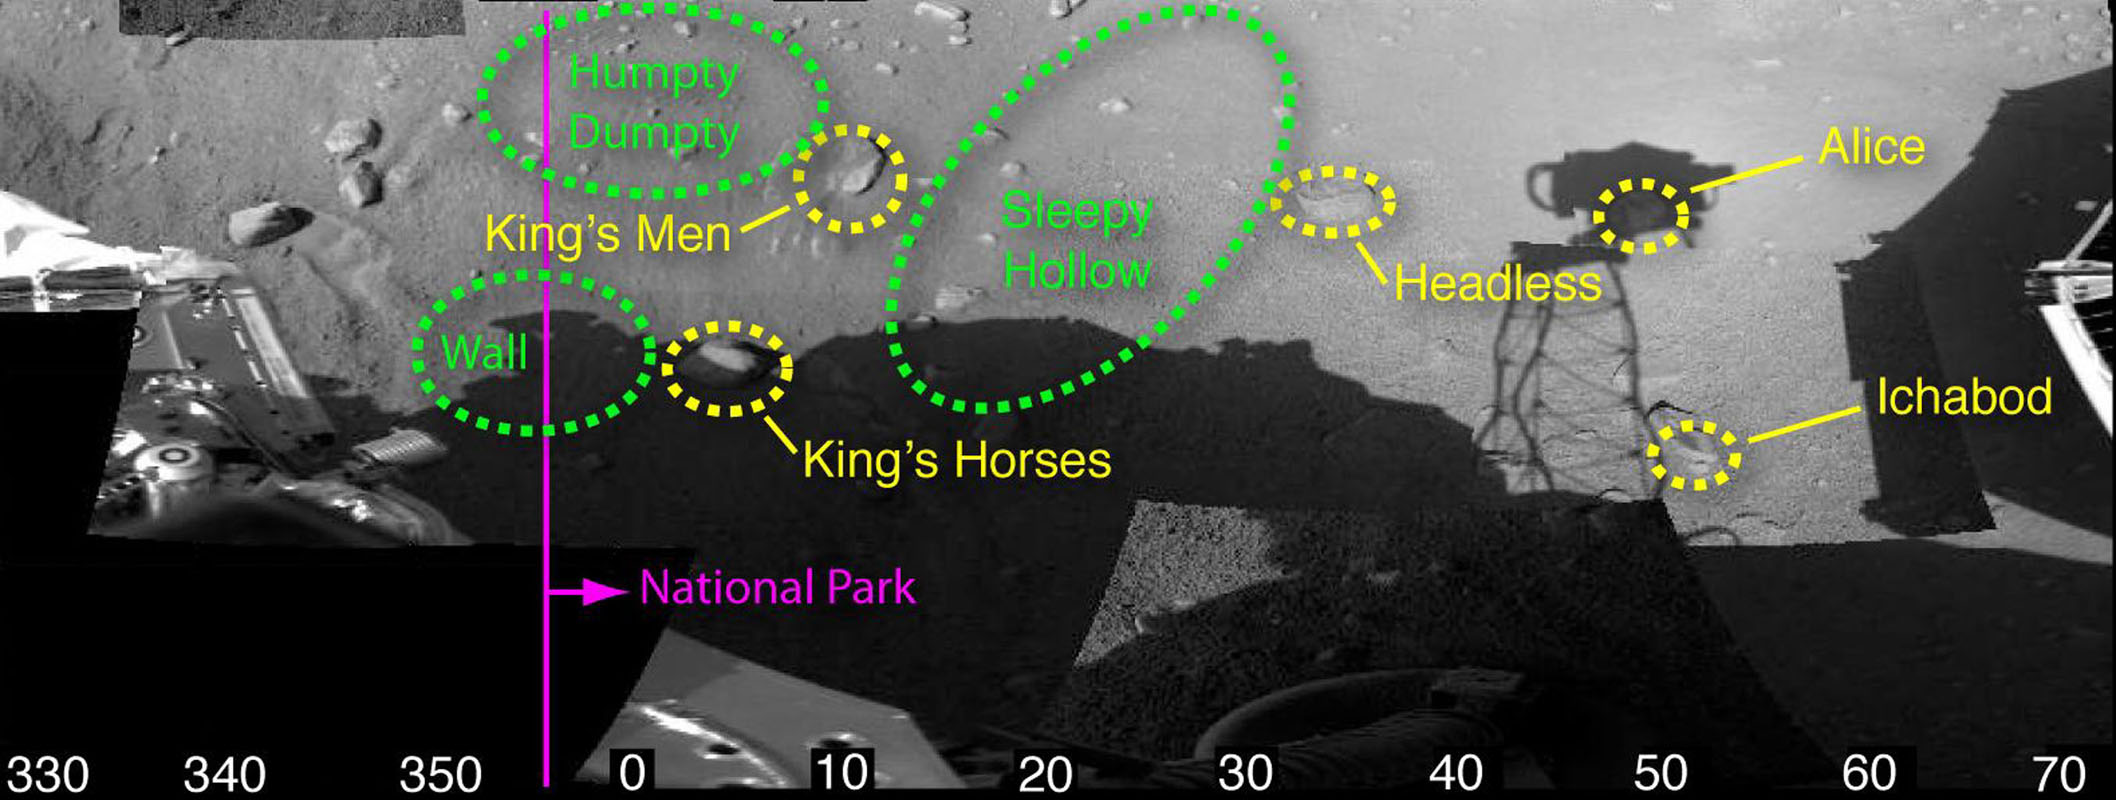 Fun, fairy-tale nicknames have been assigned to features in this animated view of the workspace reachable by the robotic arm of NASA's Phoenix Mars Lander. For example, 'Sleepy Hollow' denotes a trench and 'Headless' designates a rock.